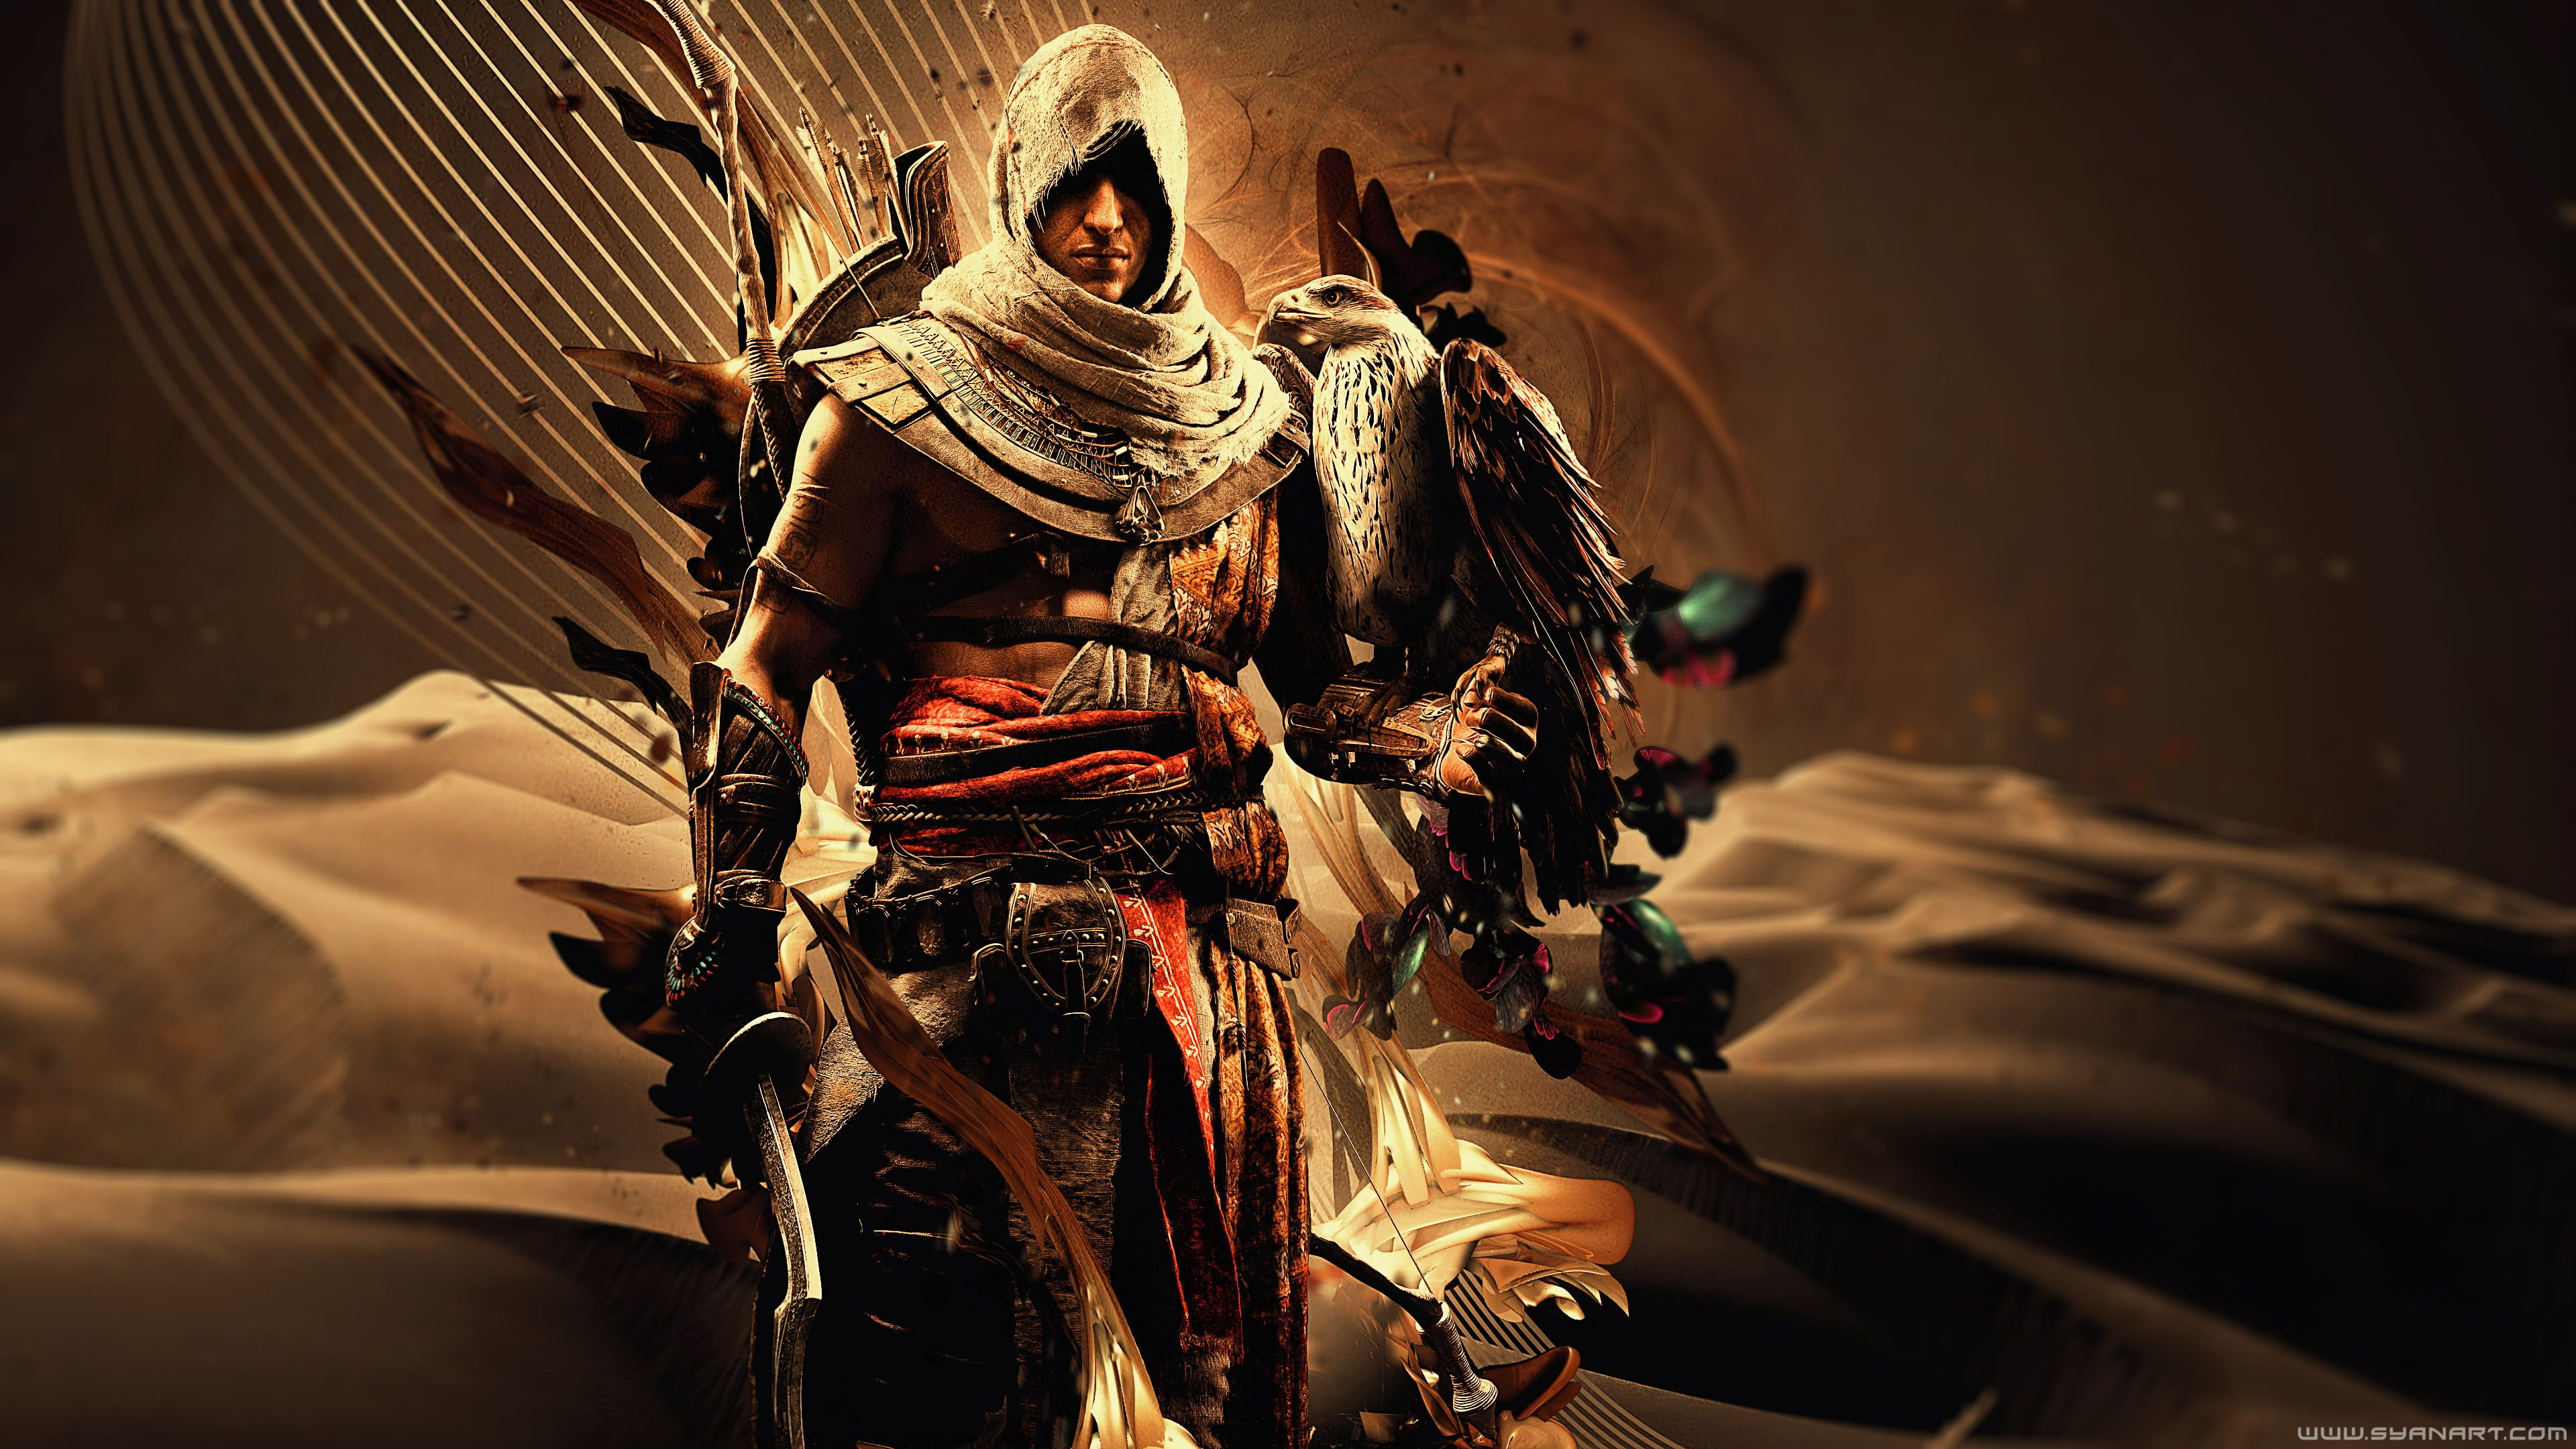 Assassin S Creed Poster Assassin S Creed Video Games Eagle